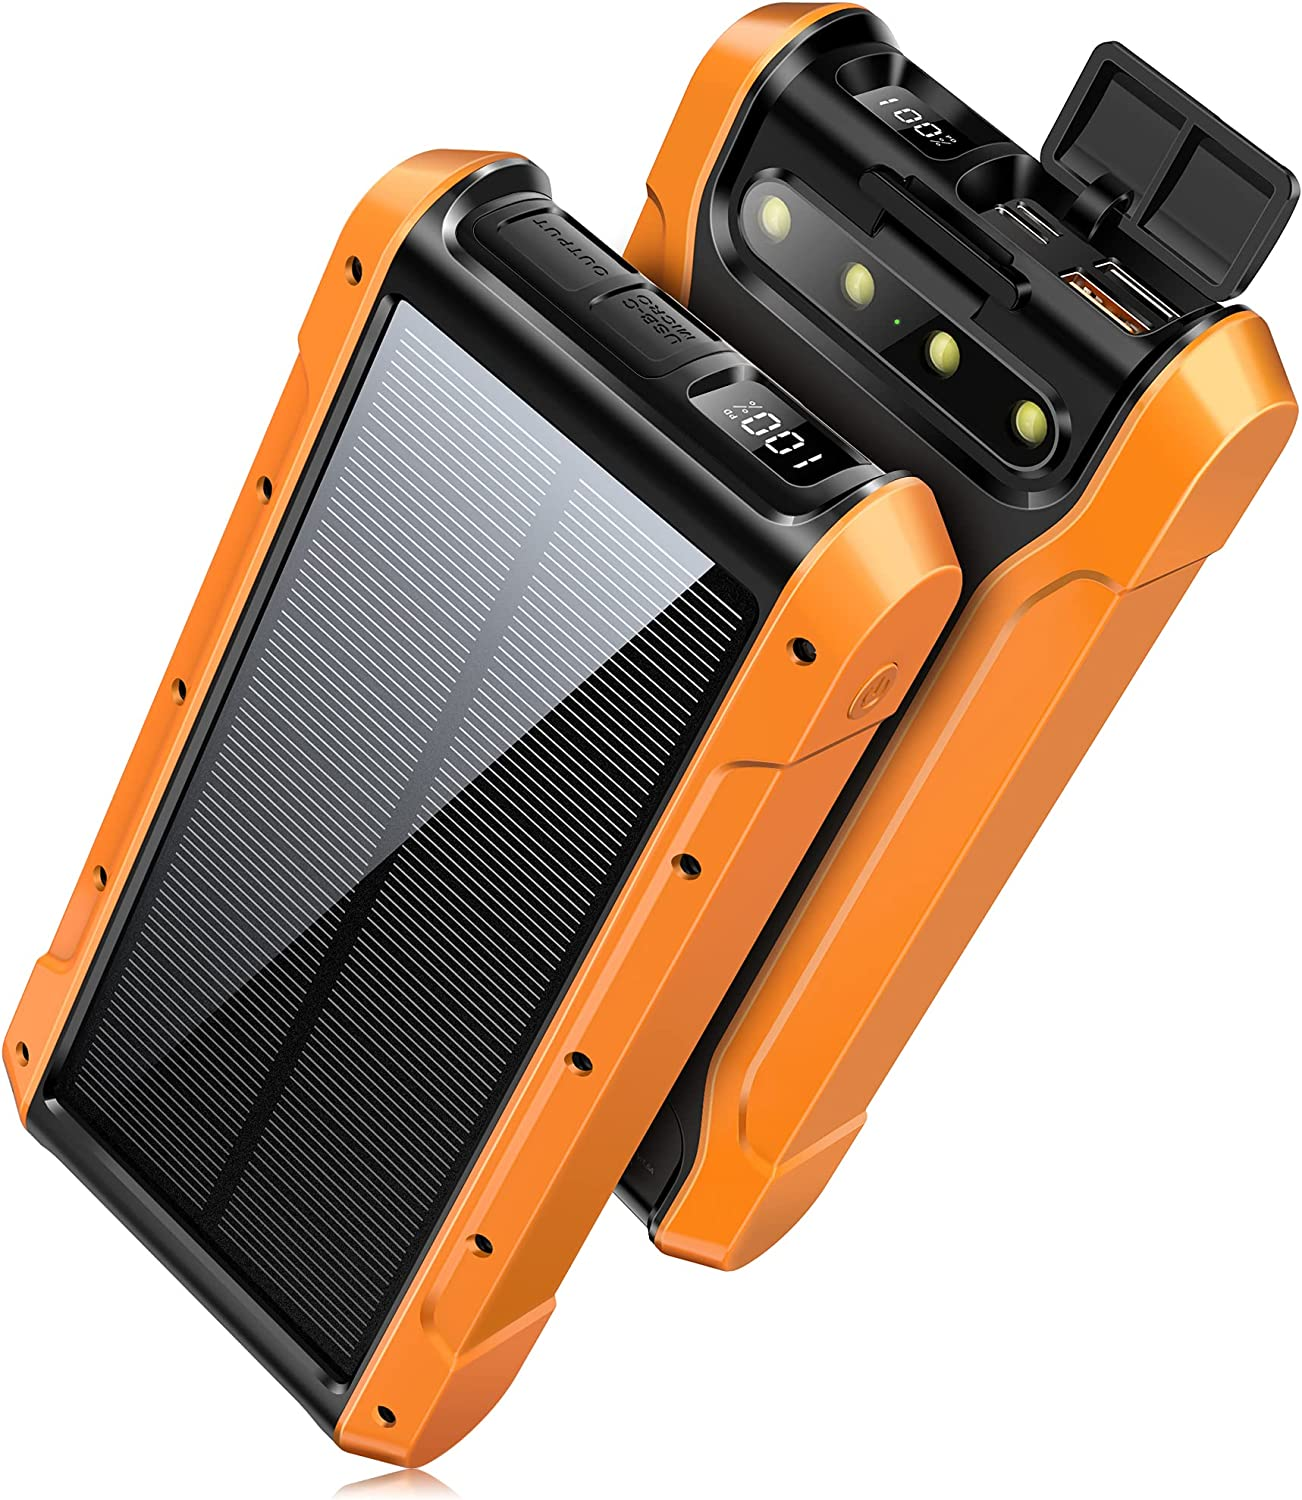 Solar Charger, 30000mAh PD 25W QC3.0 Quick Charge Wireless Power Bank...